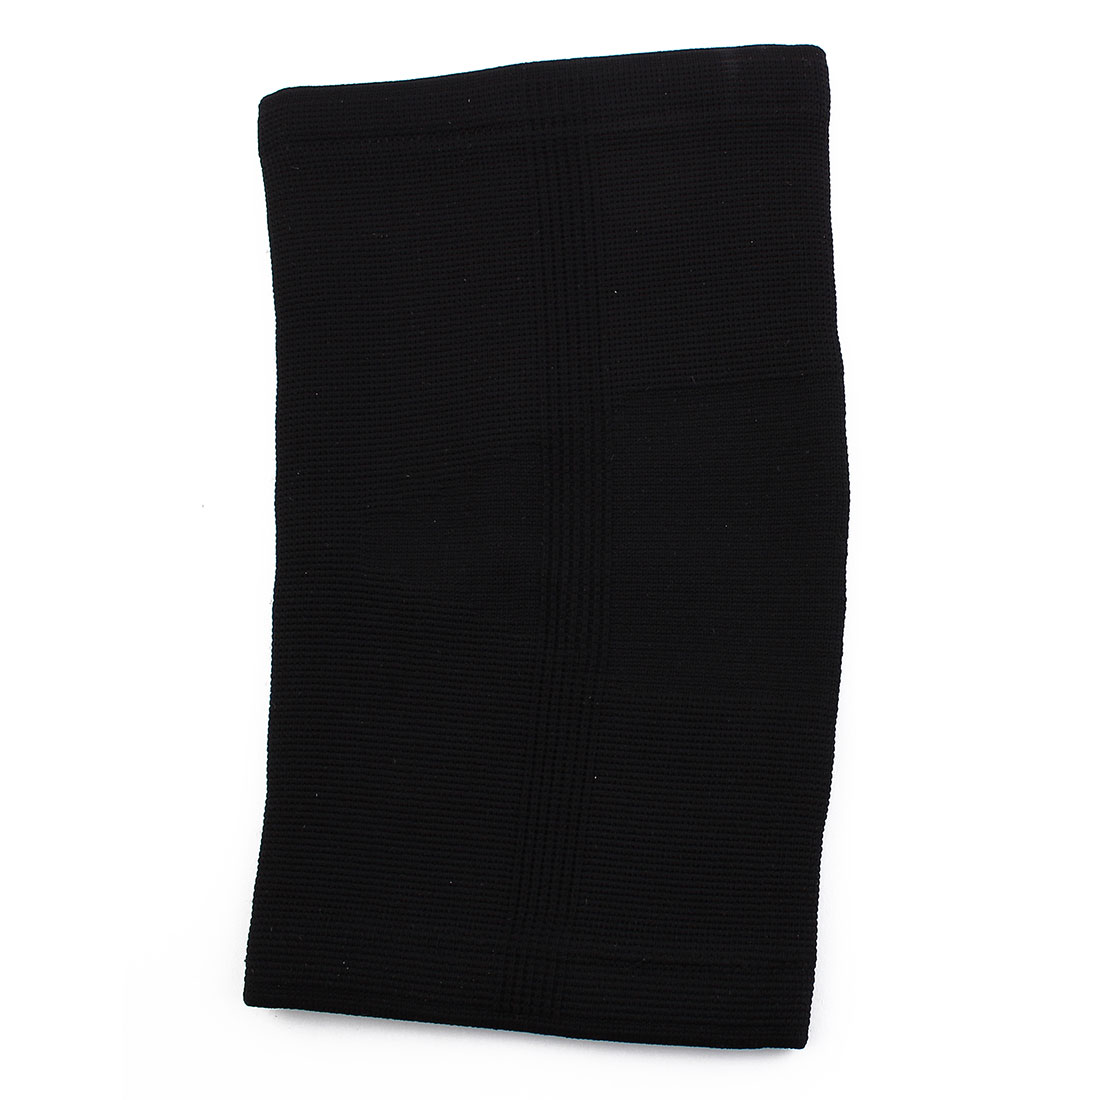 Outdoor Sport Spandex Stretchy Leg Calf Support Brace Pad Wrap Band Protector Black